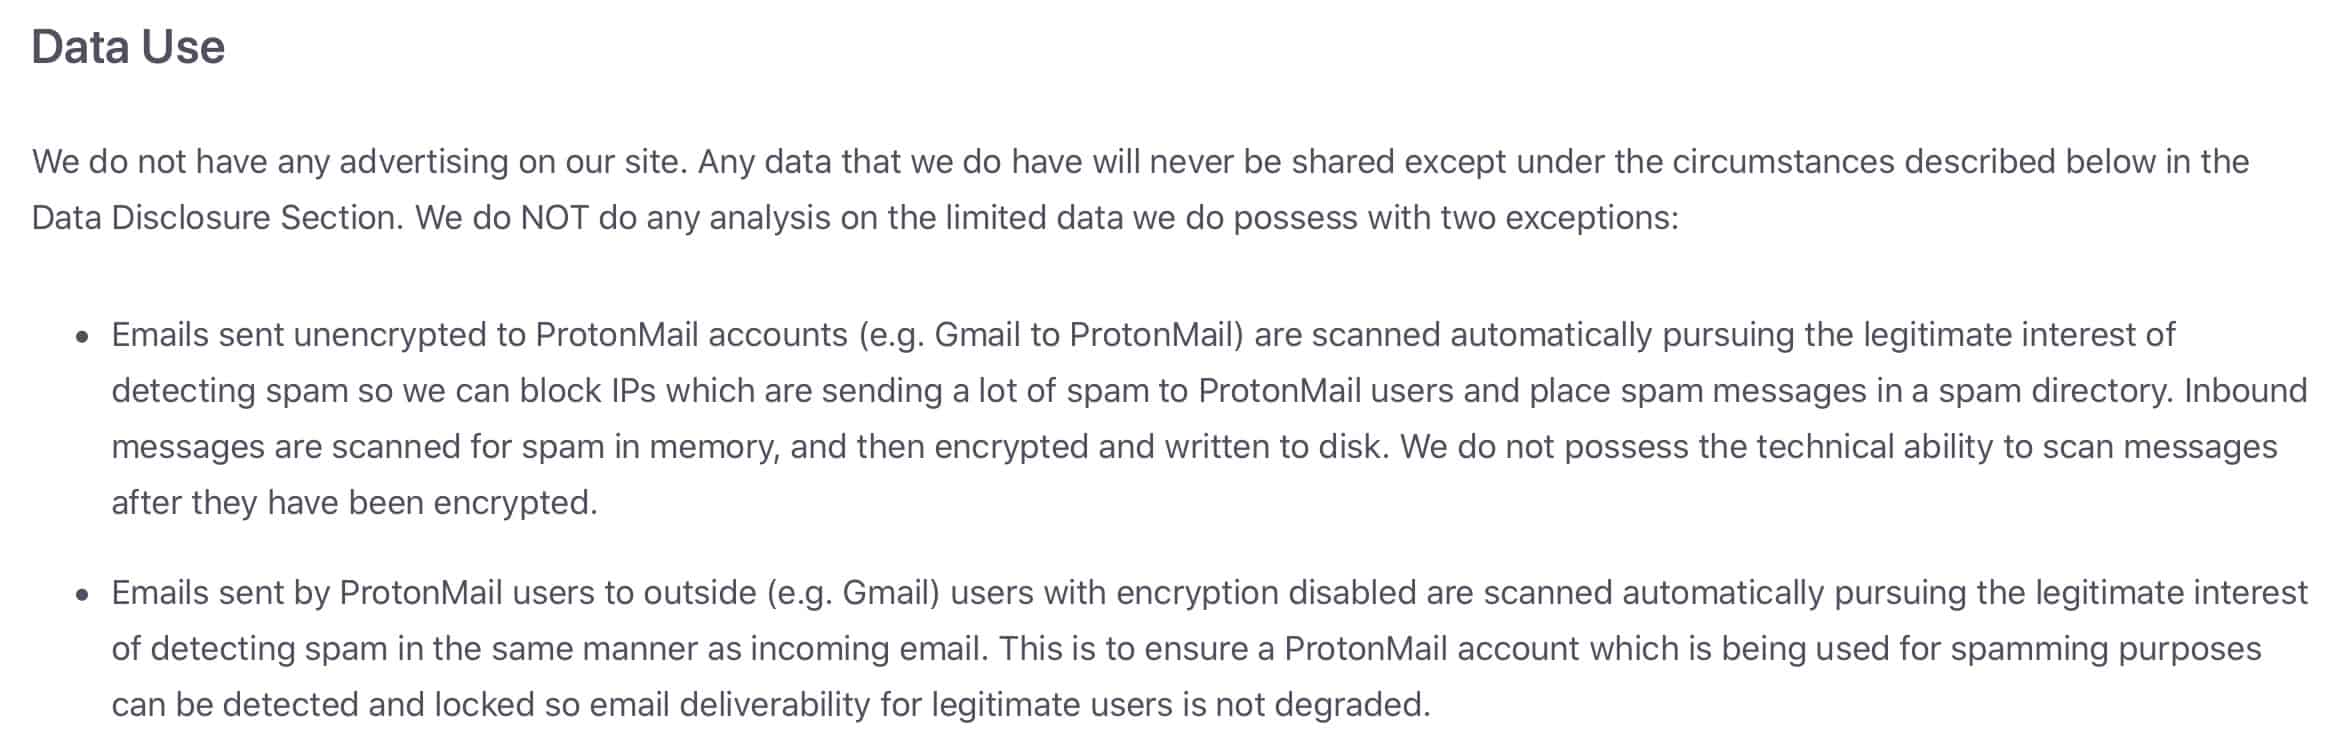 ProtonMail - Privacy Policy